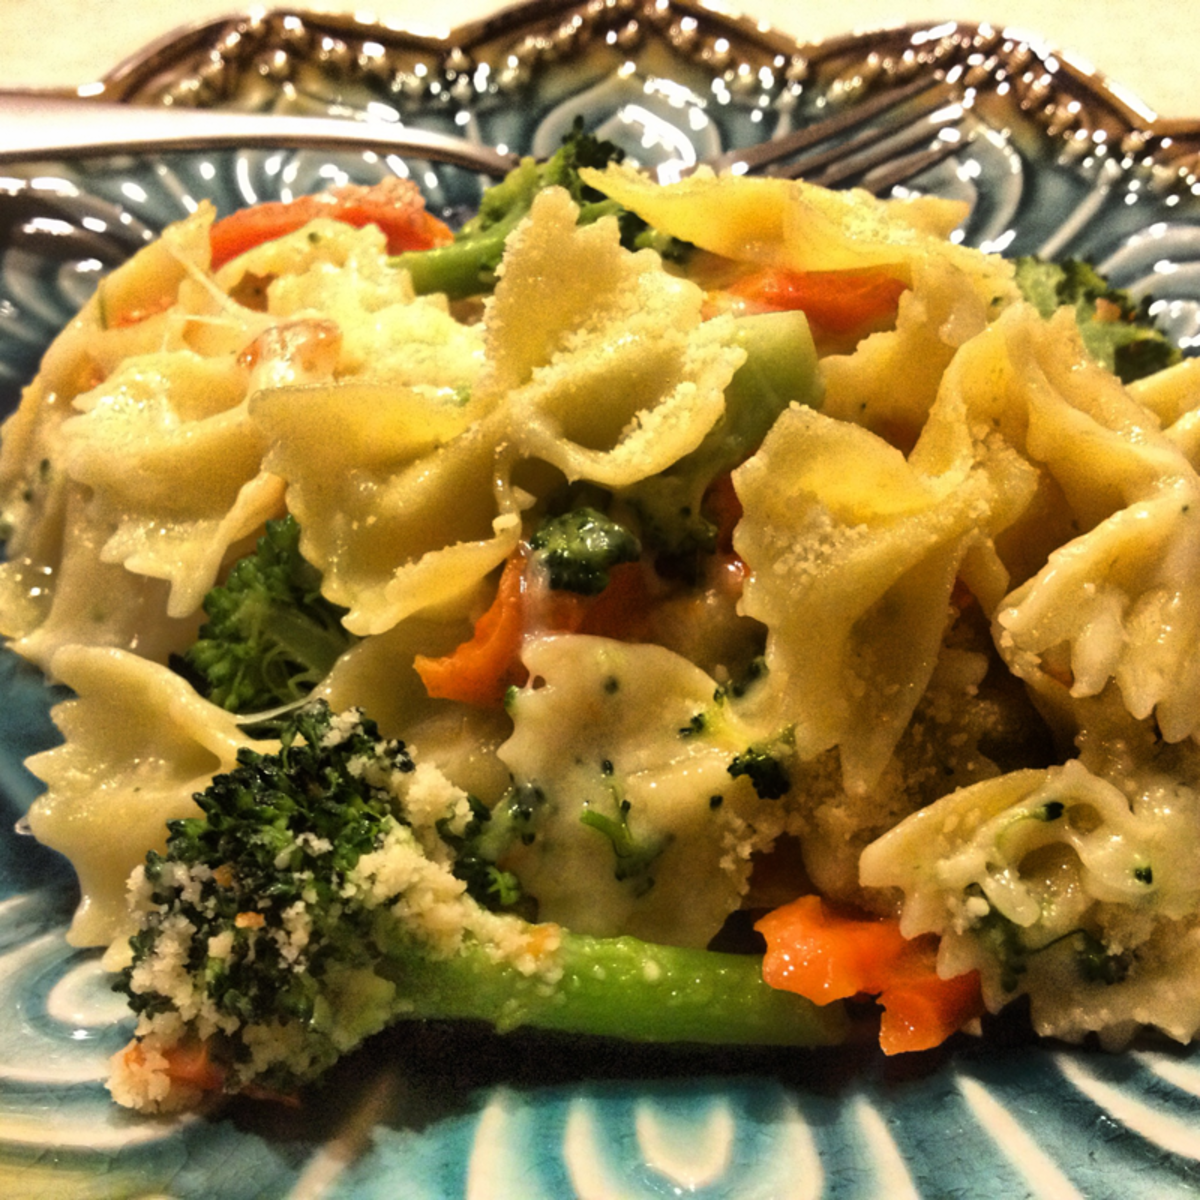 Quick and Healthy Recipe: Four-Cheese Pasta With Veggies